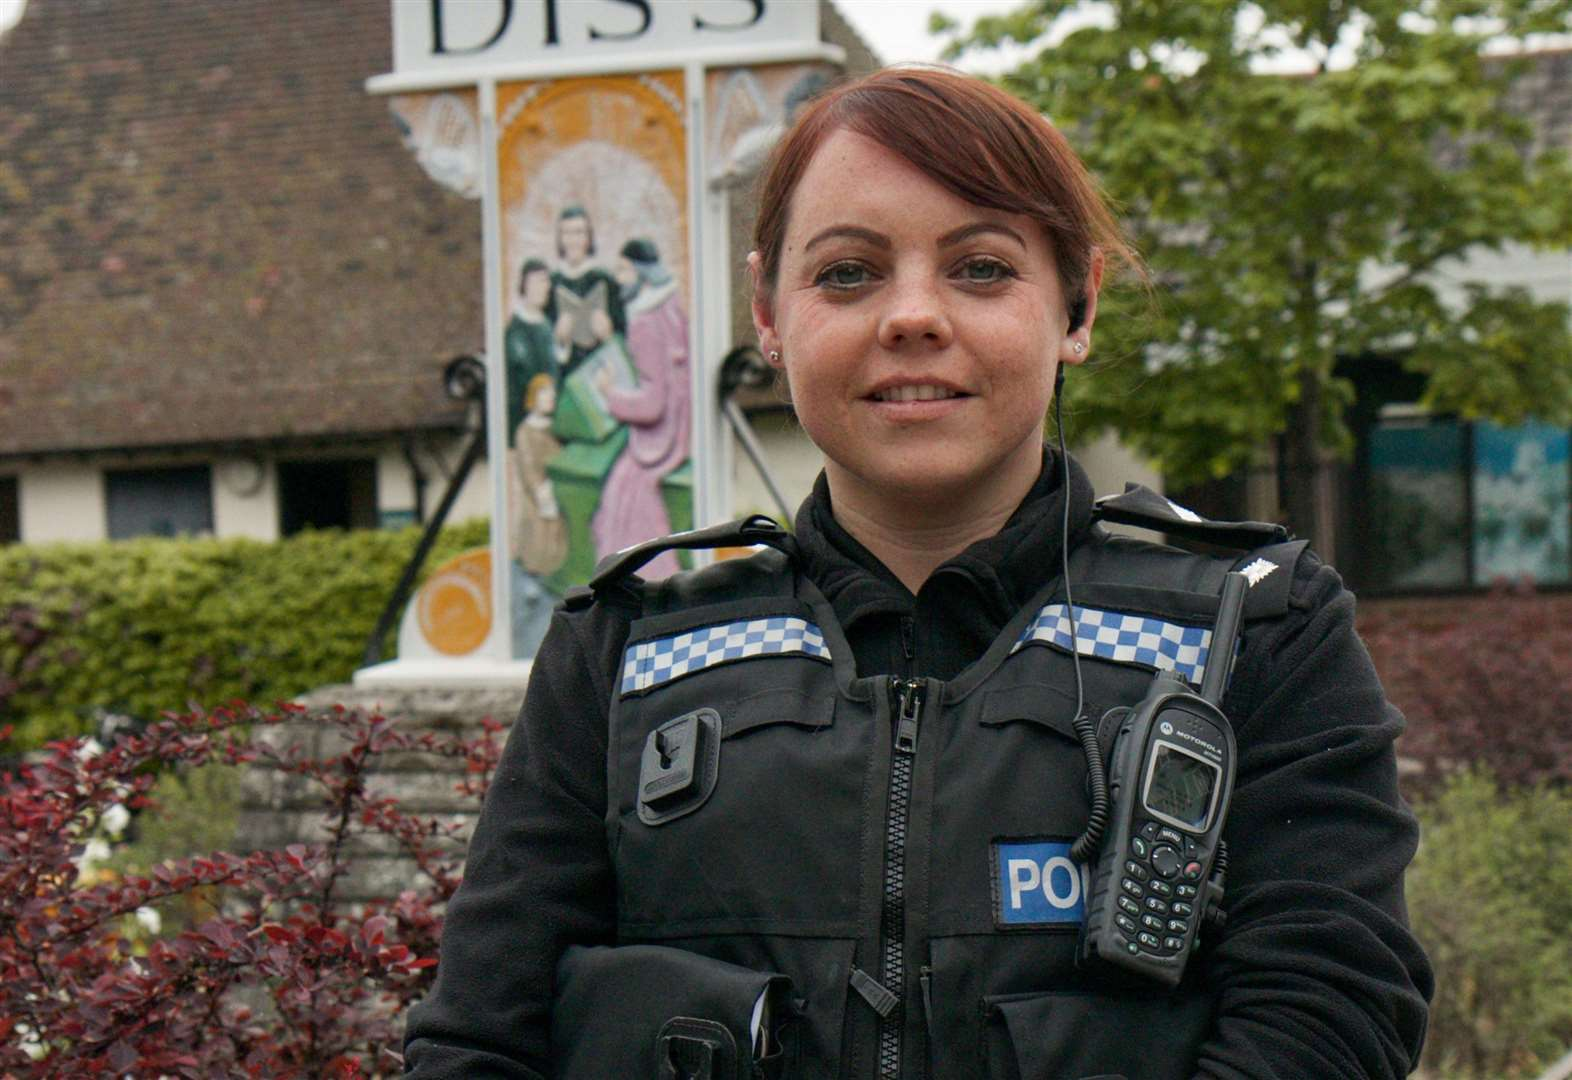 Busy start for new policing inspector